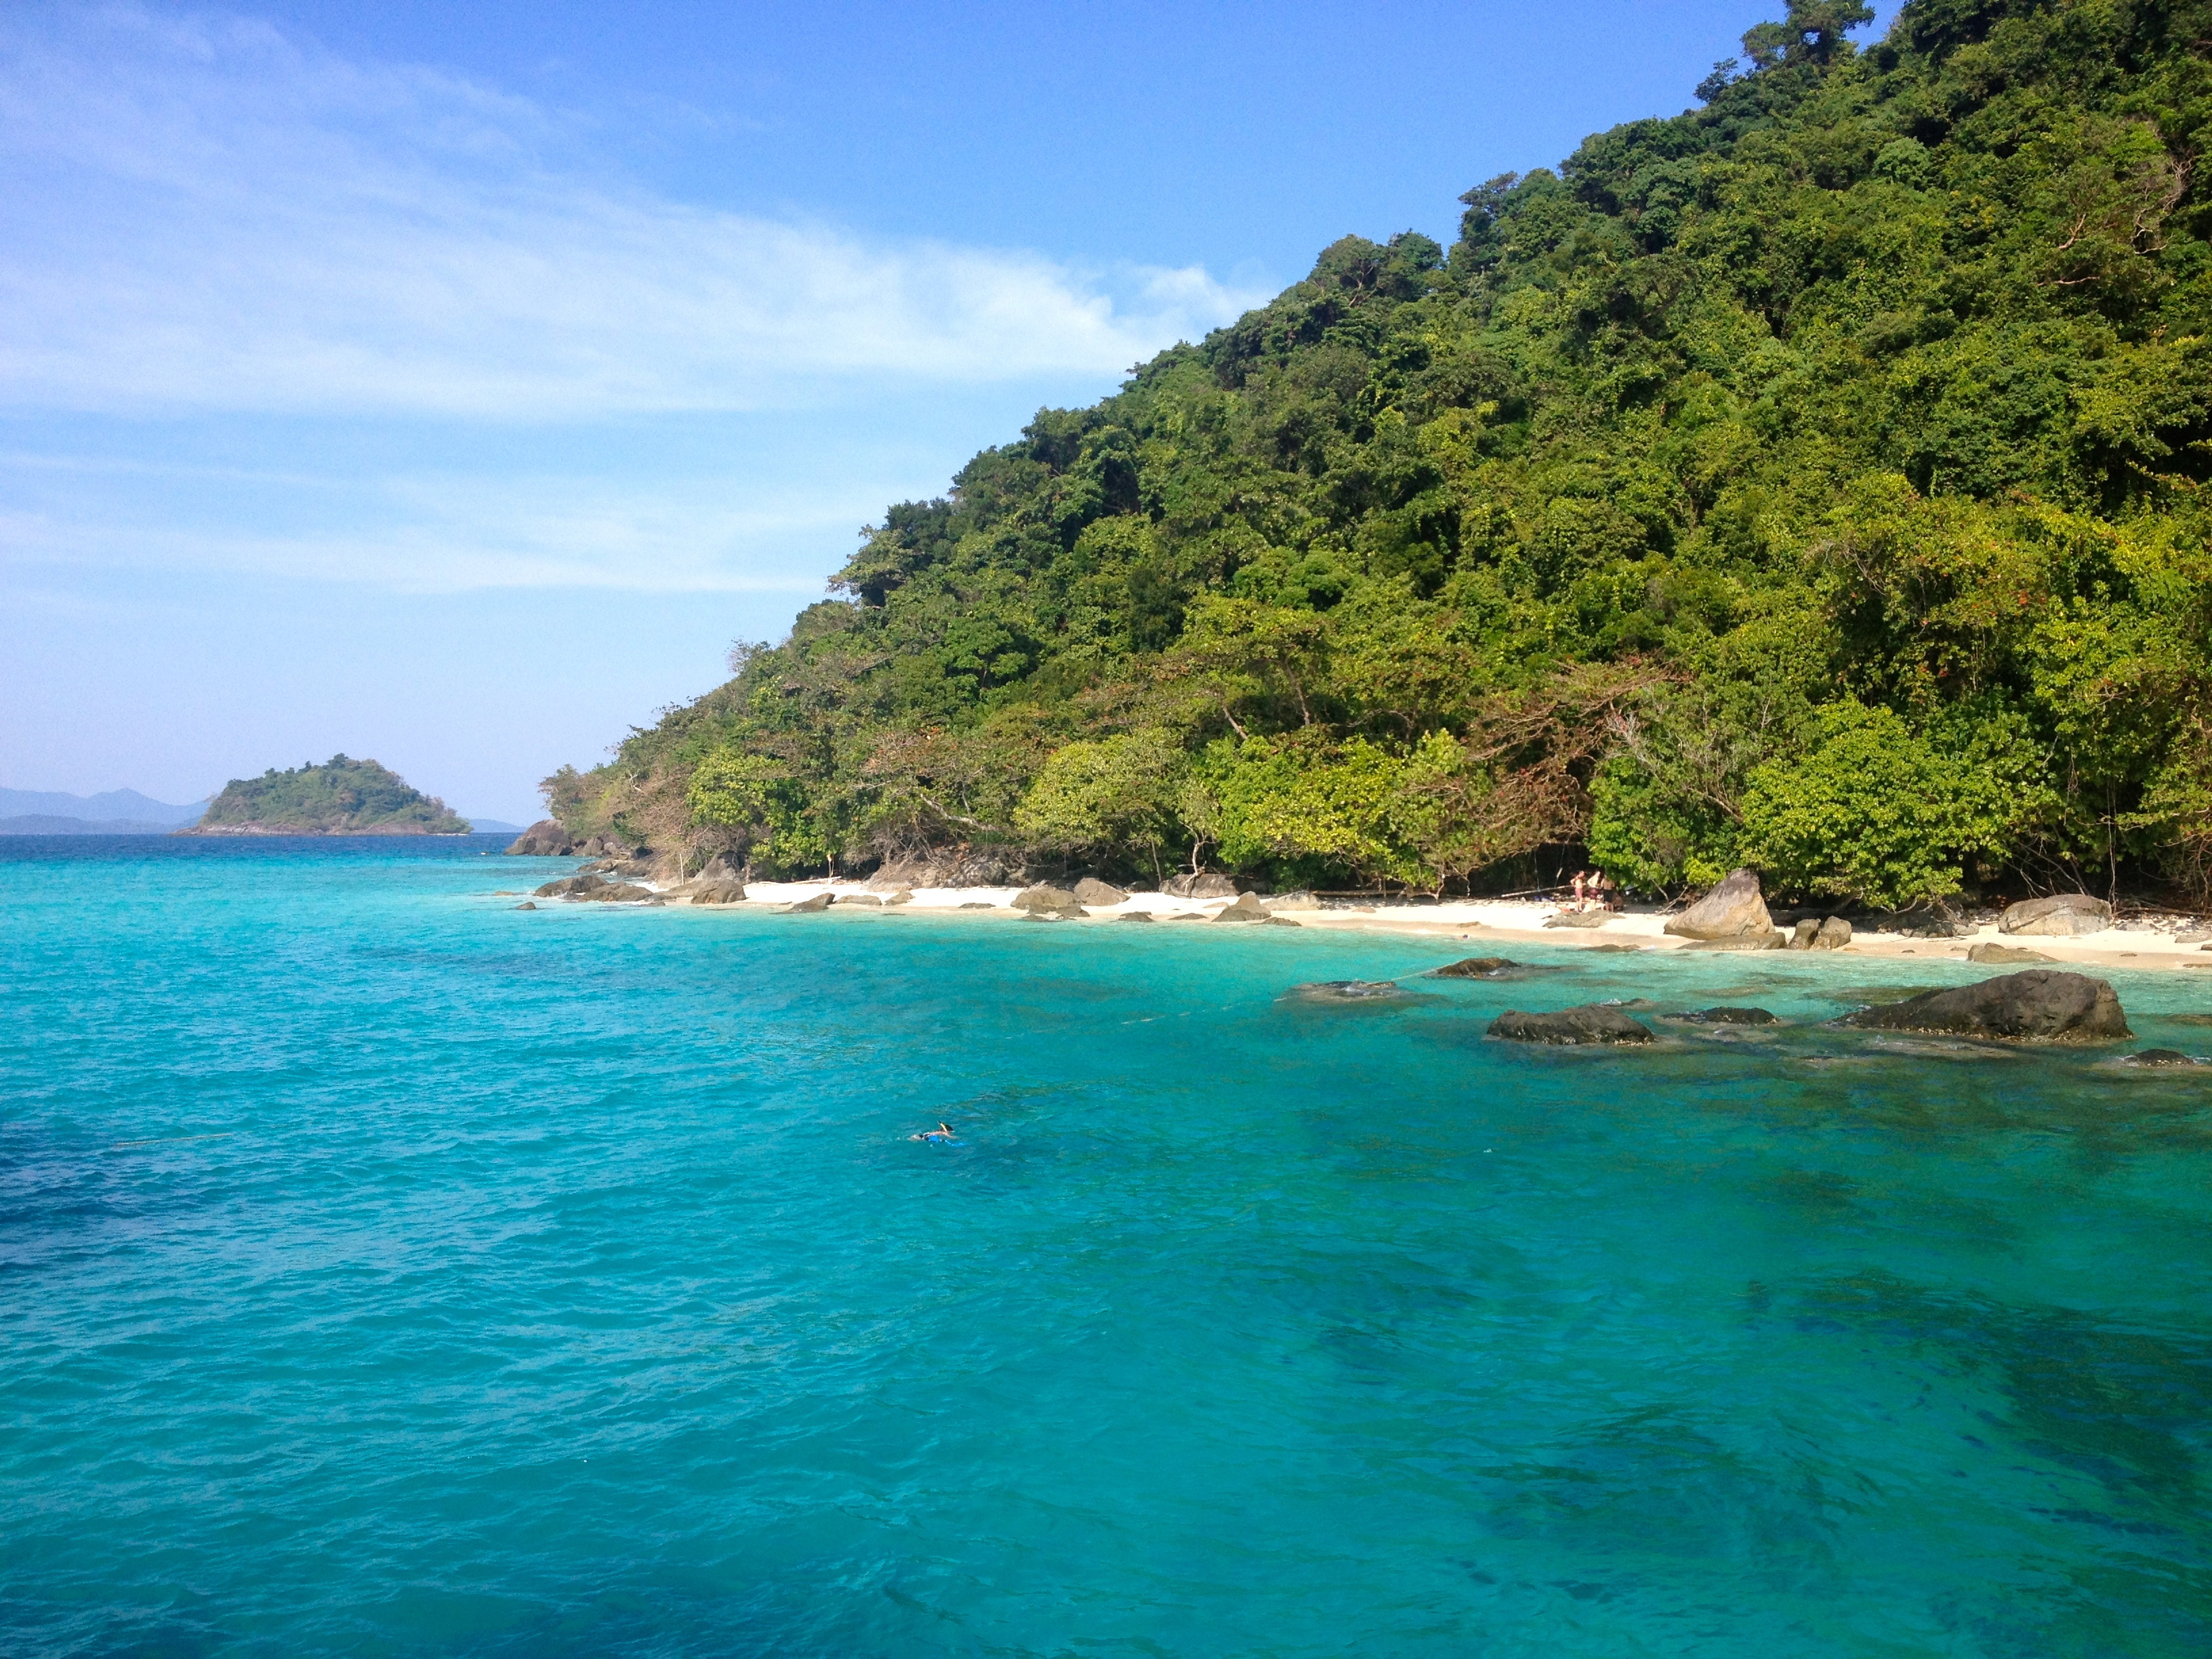 koh_chang_islands.jpg